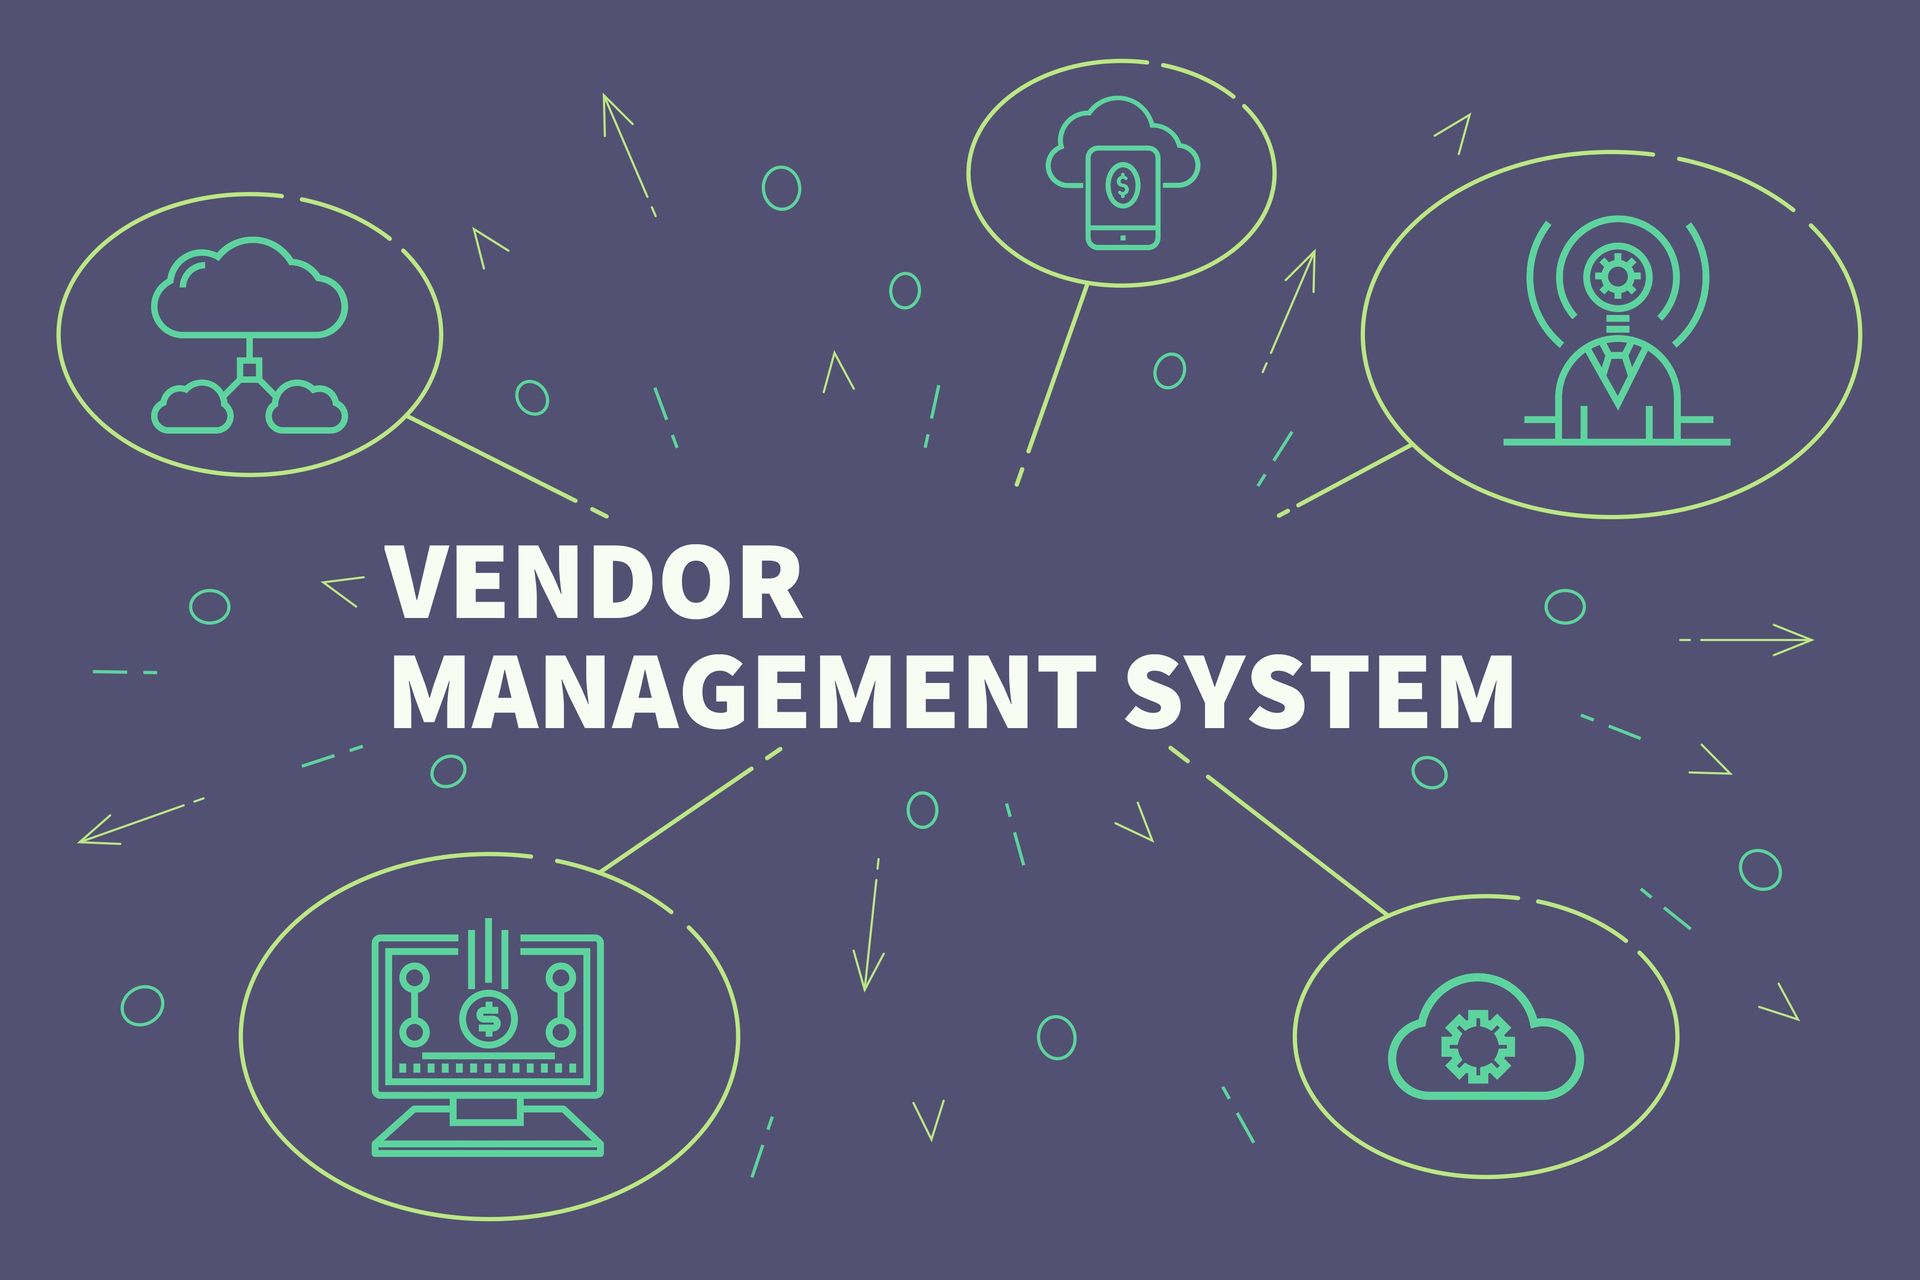 Top Vendor Management Tools To Simplify Administration Workforce Management Business Management Management Skills